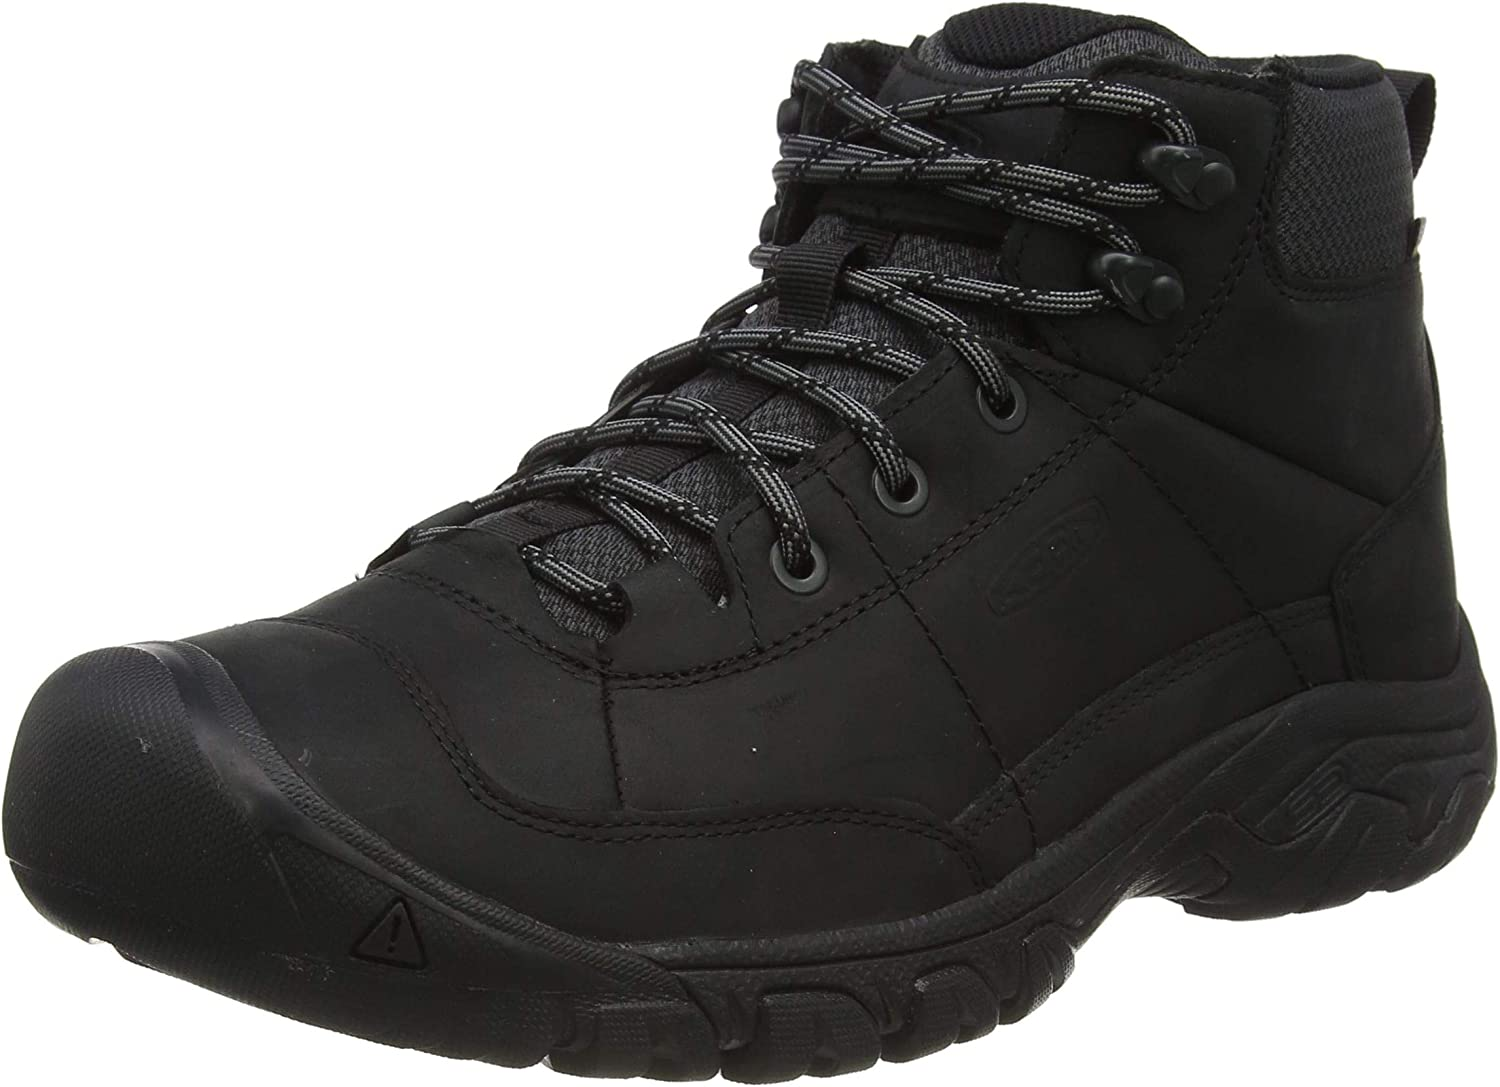 Cheap mail order specialty store KEEN Men's Spasm price Targhee 3 Boot Casual Chukka Waterproof